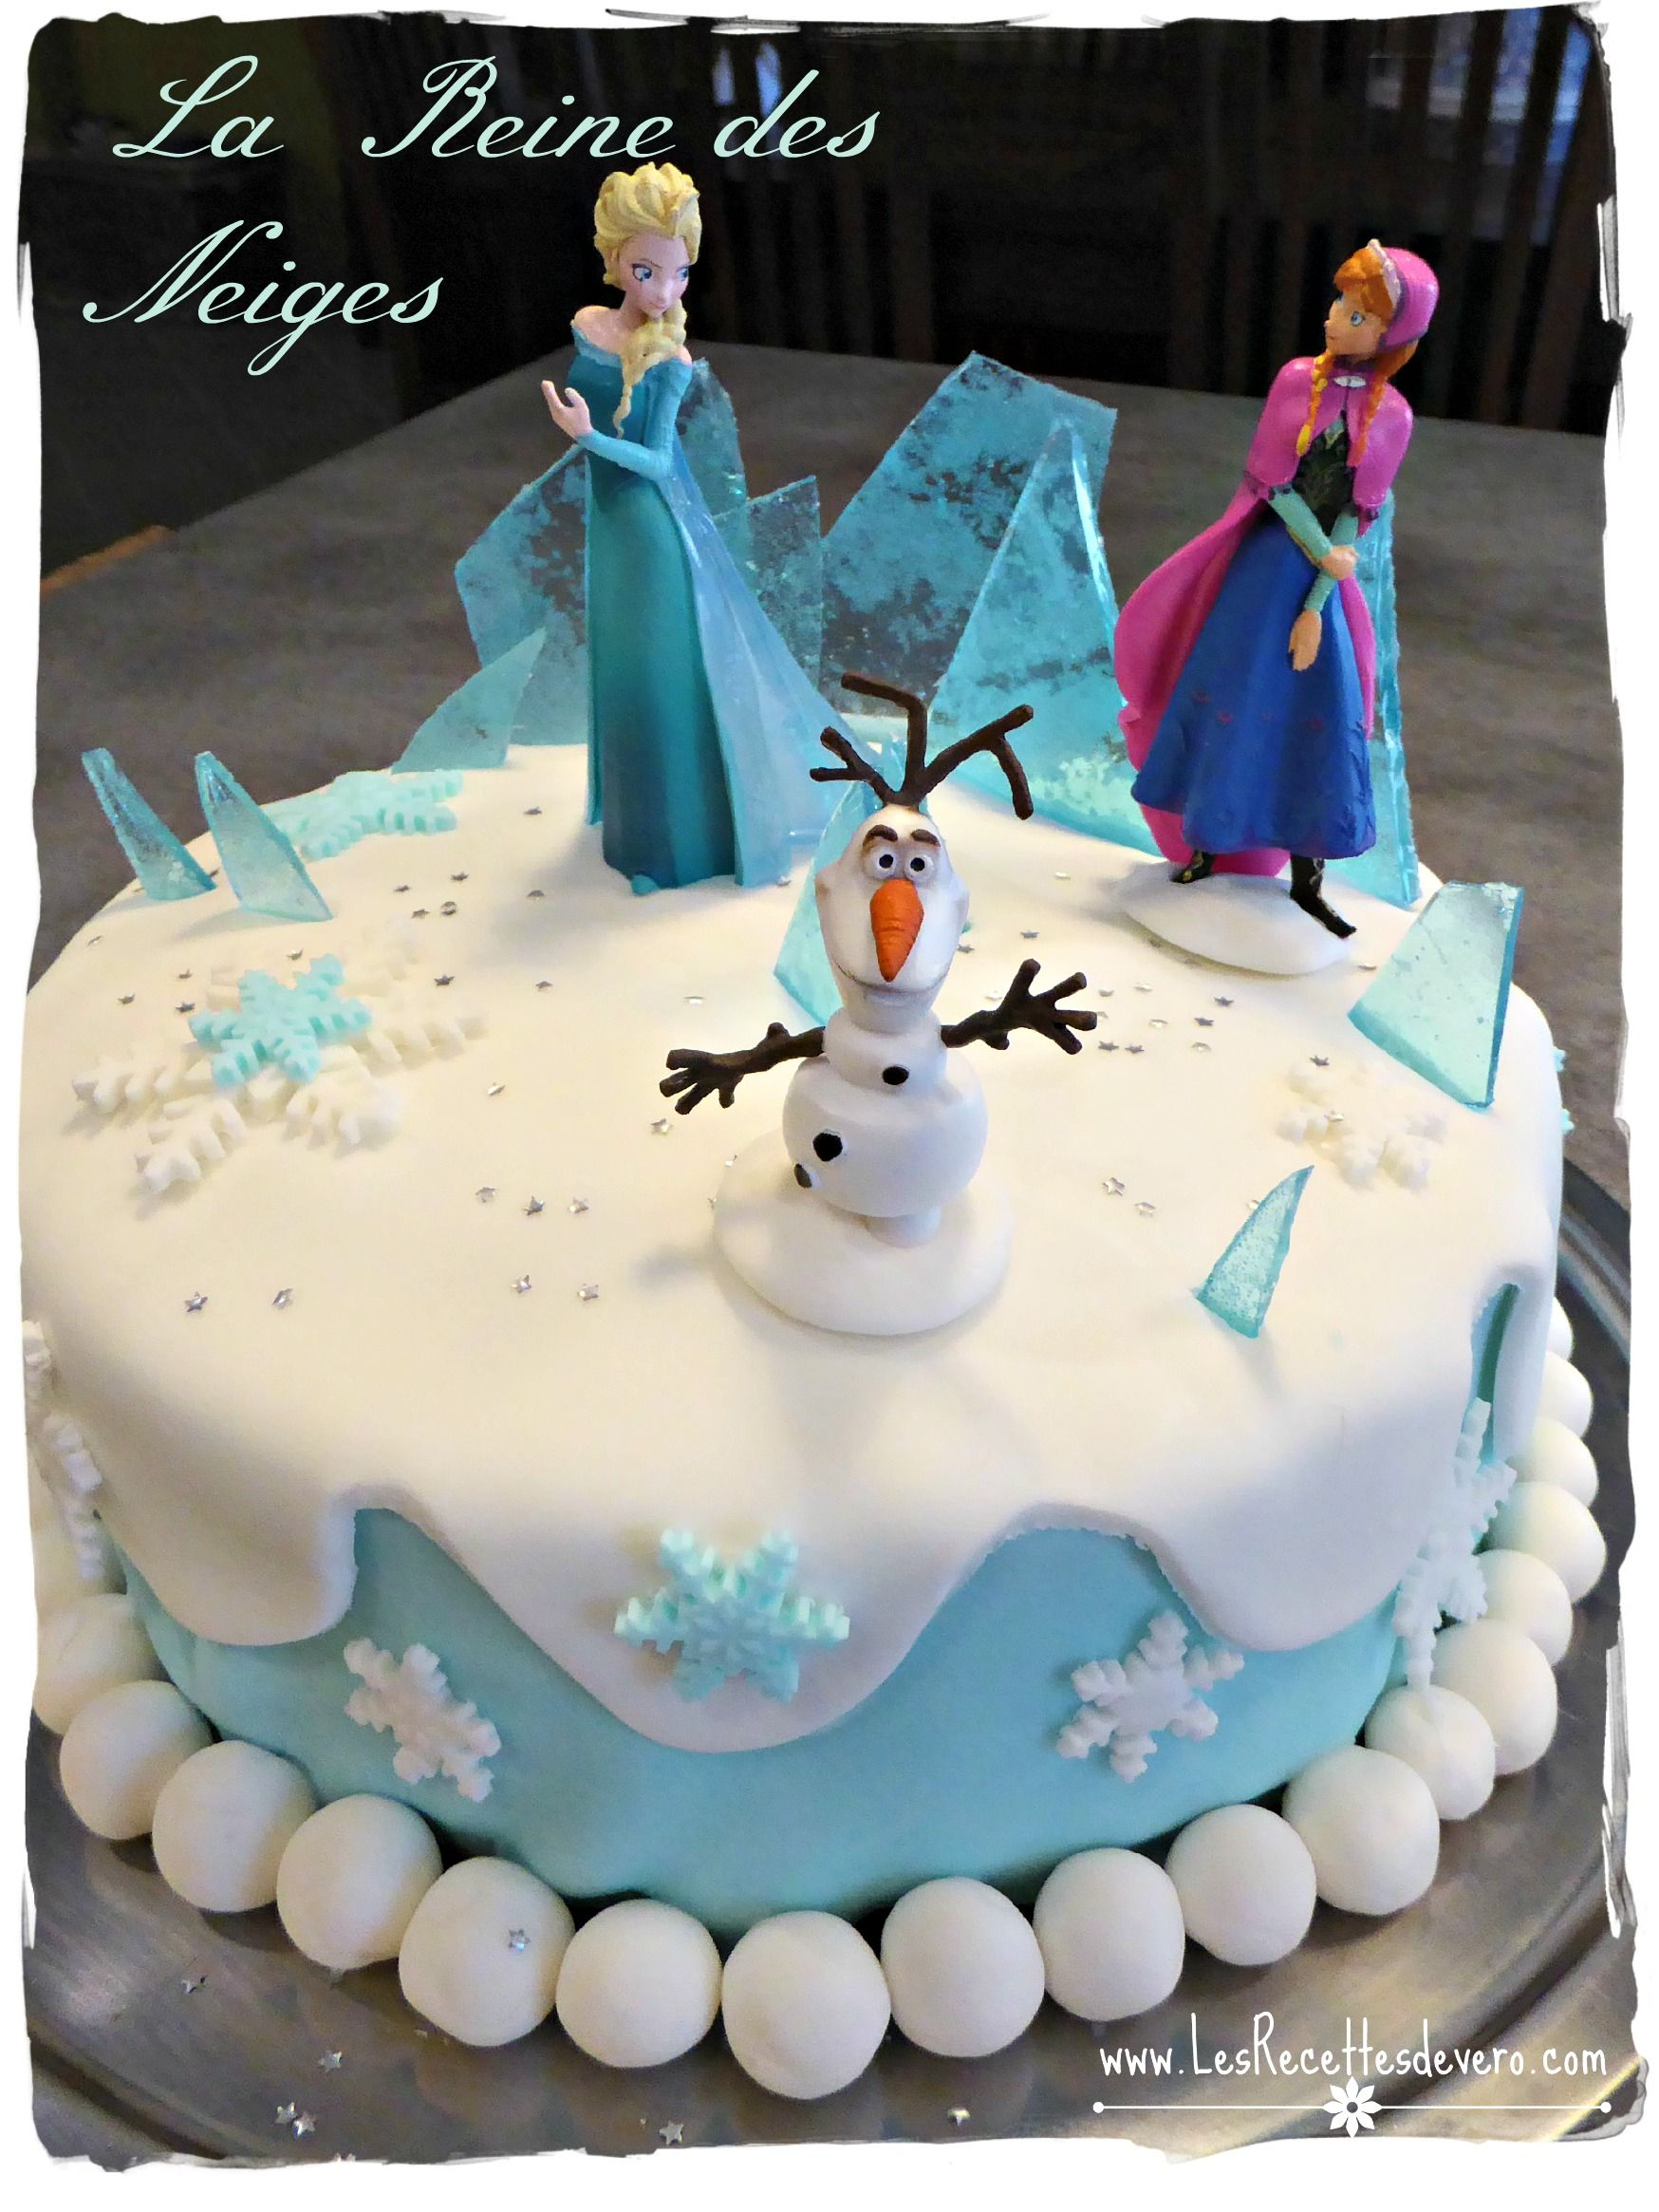 Model de gateau reine des neiges